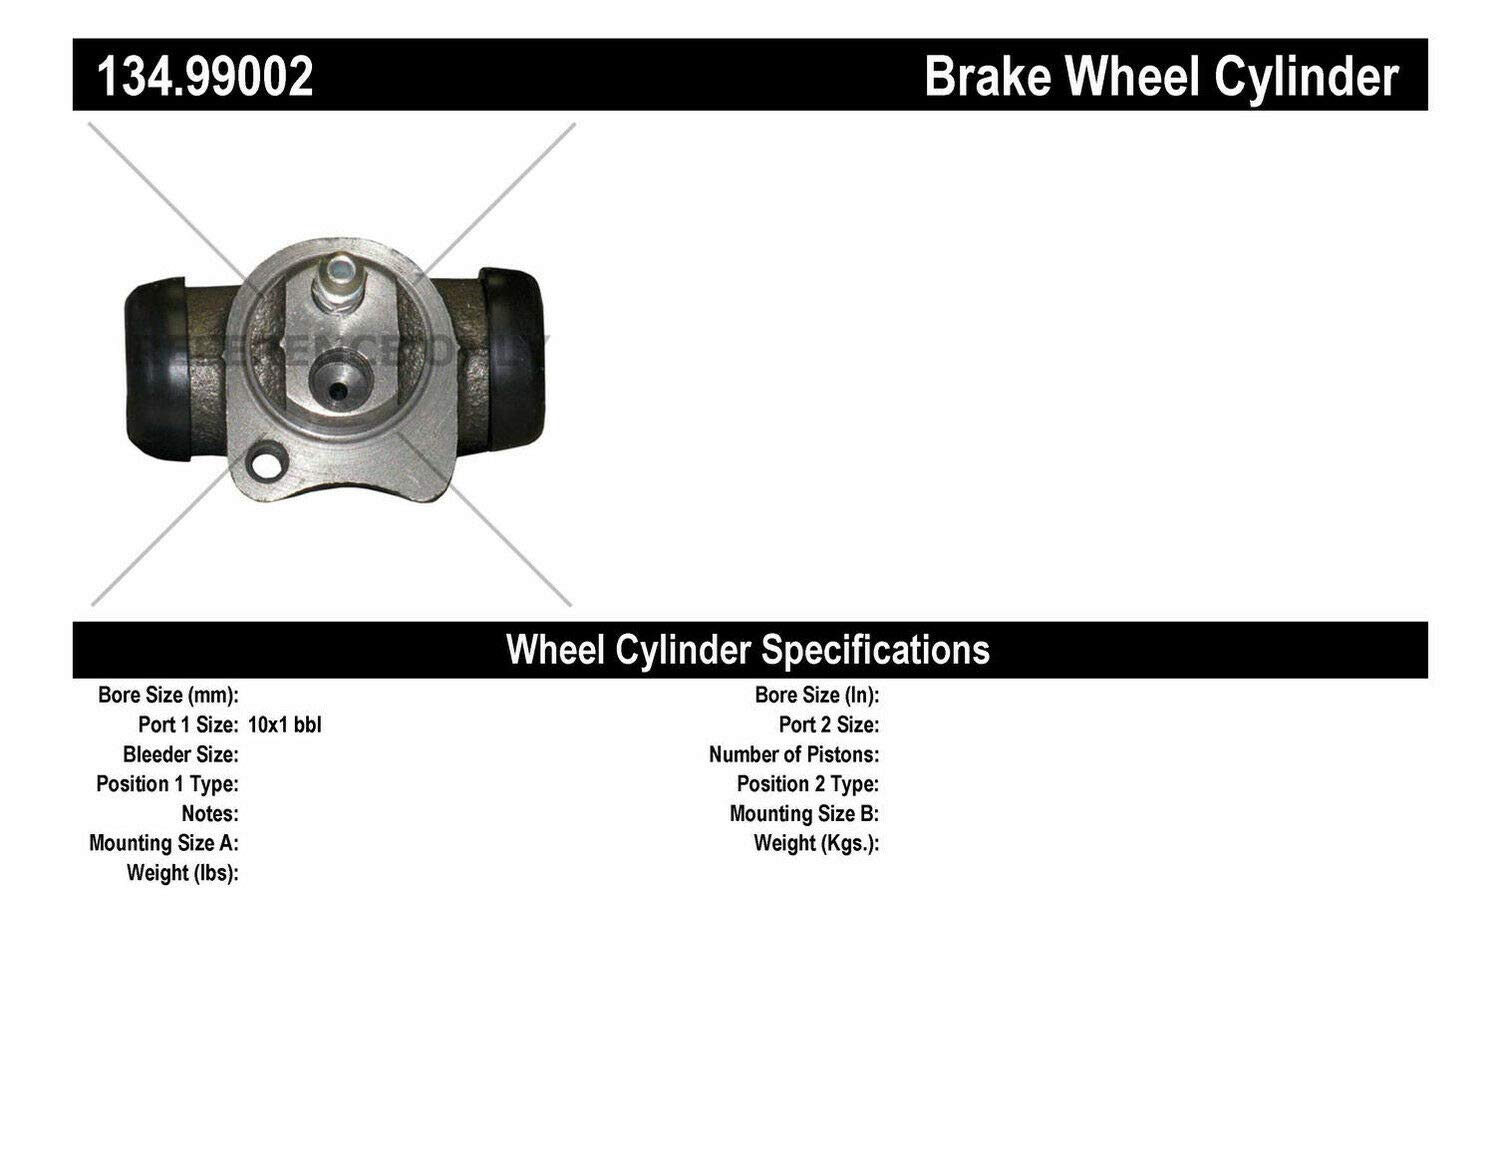 134.99002 Centric Drum Brake Wheel Cylinder